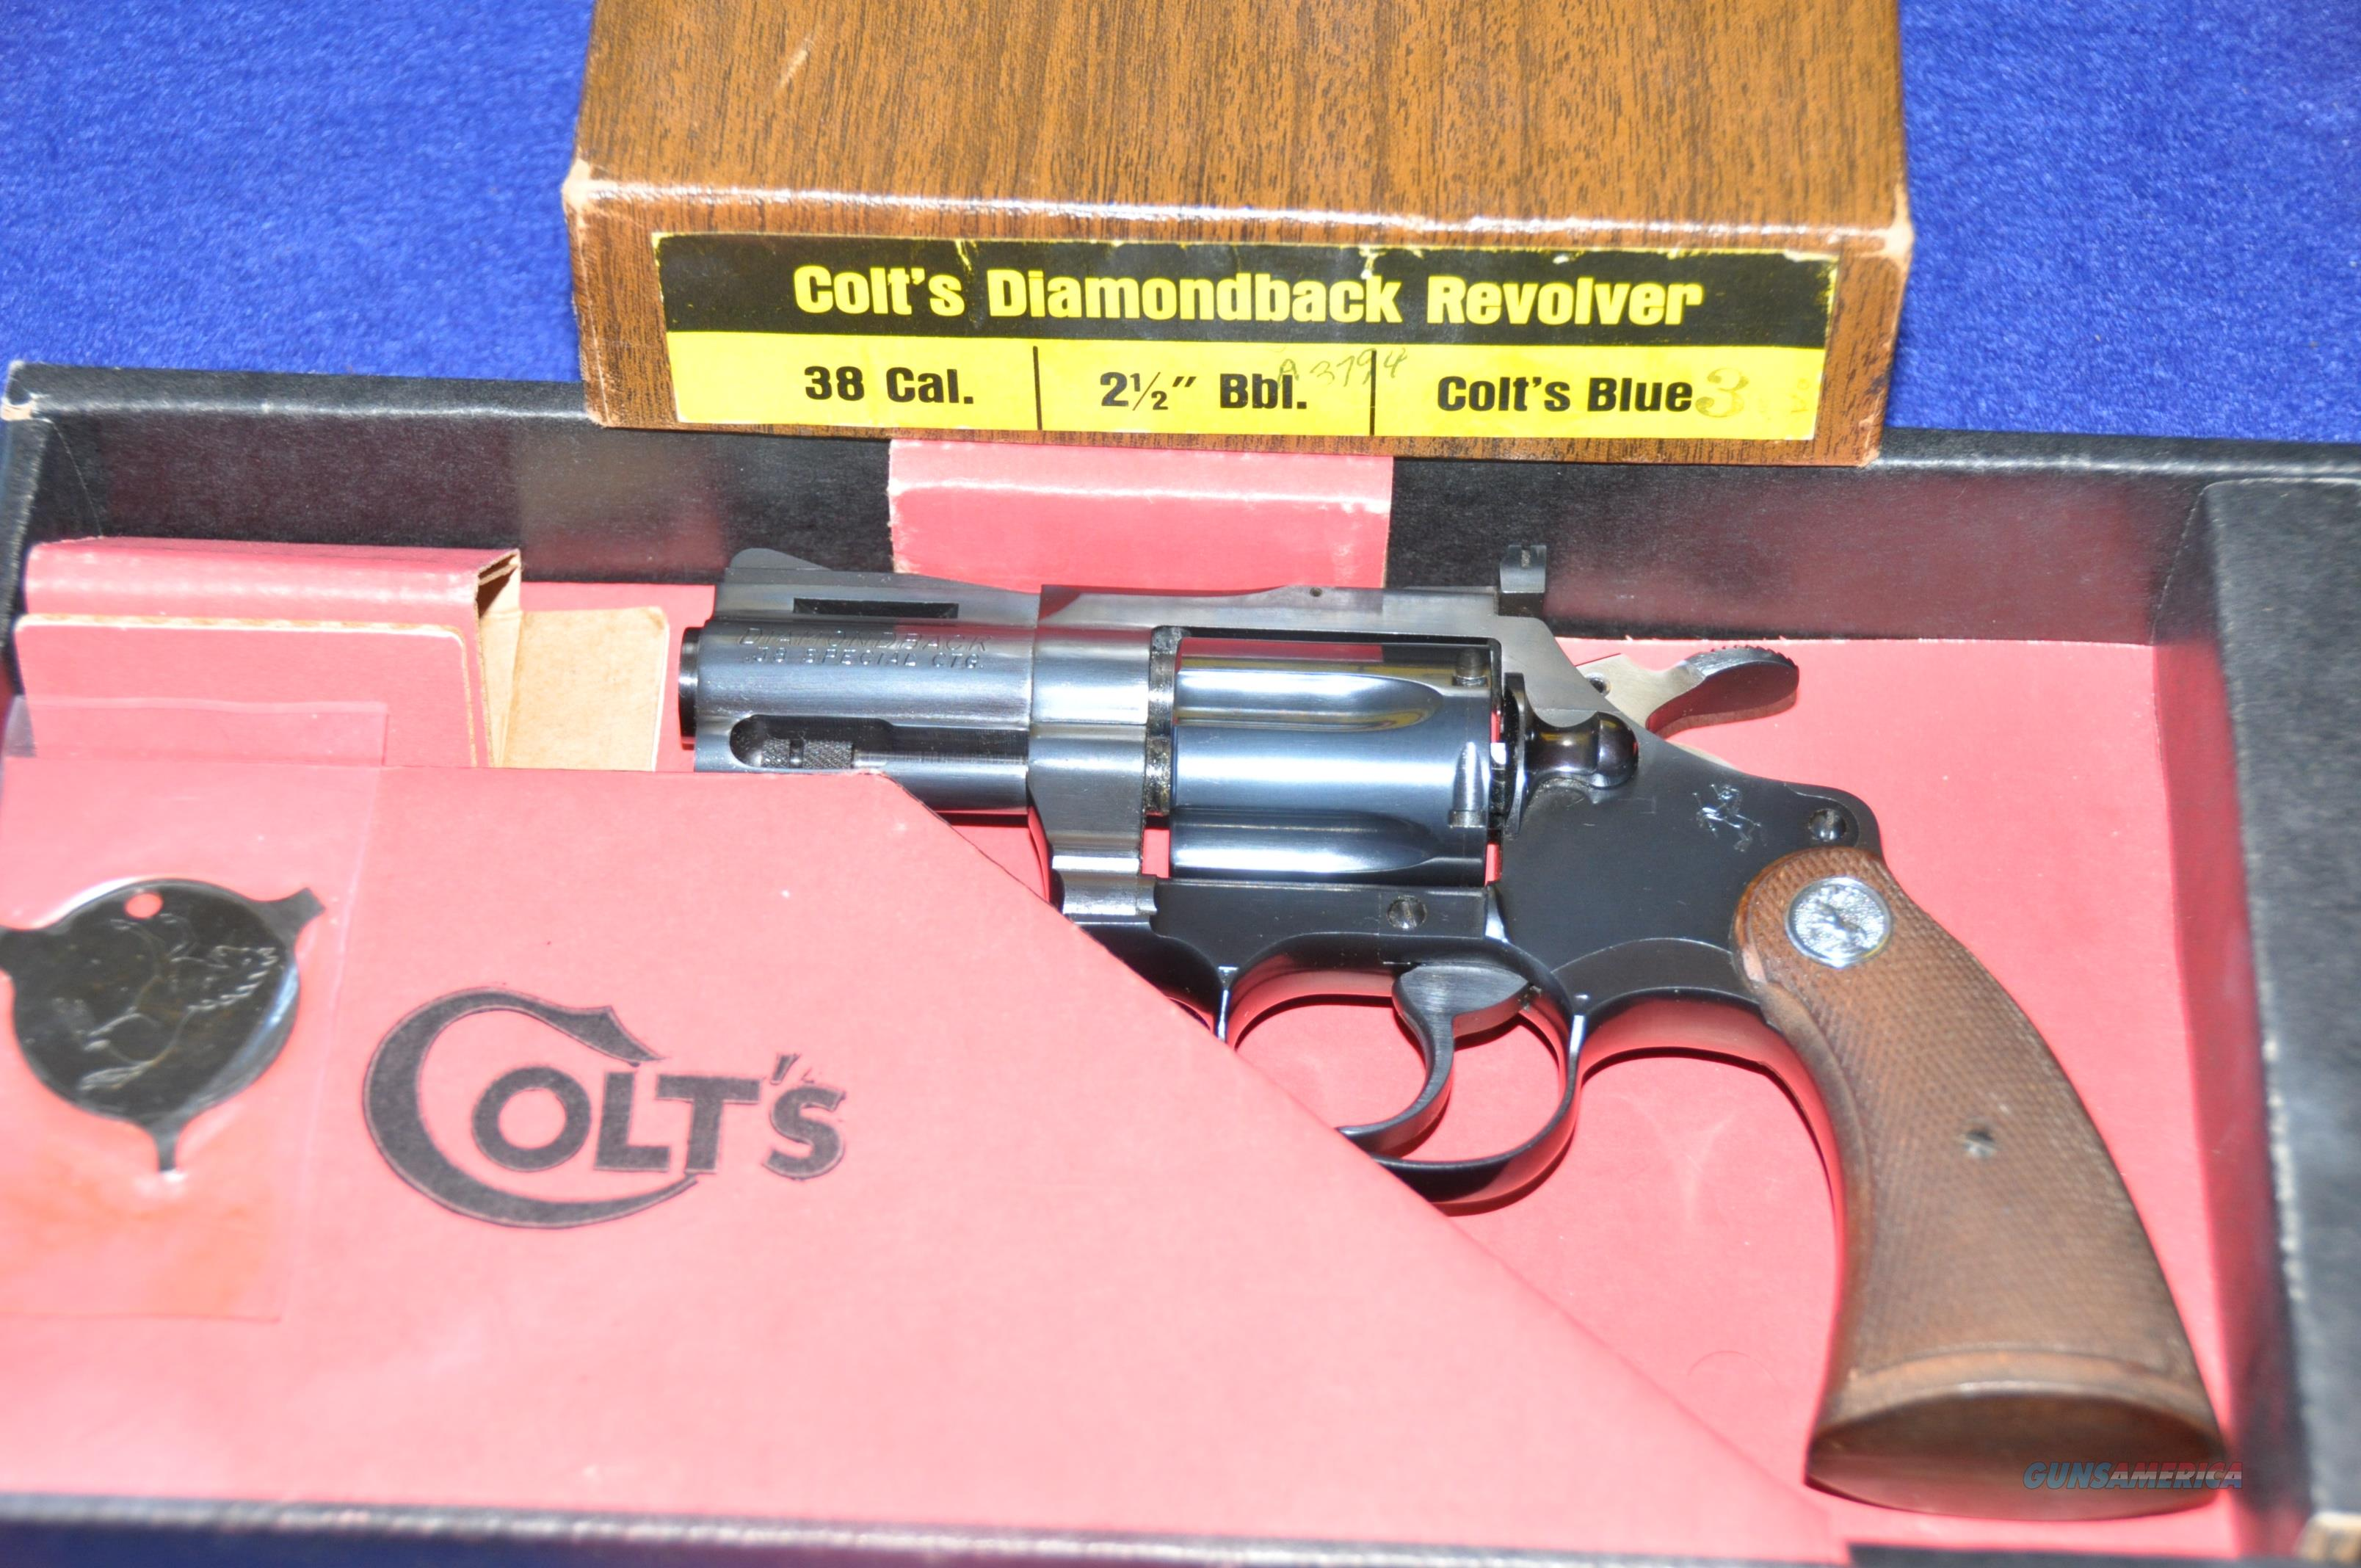 "COLT Diamondback 38Spl 2-1/2"" blue as new in orig fact box  Guns > Pistols > Colt Double Action Revolvers- Modern"